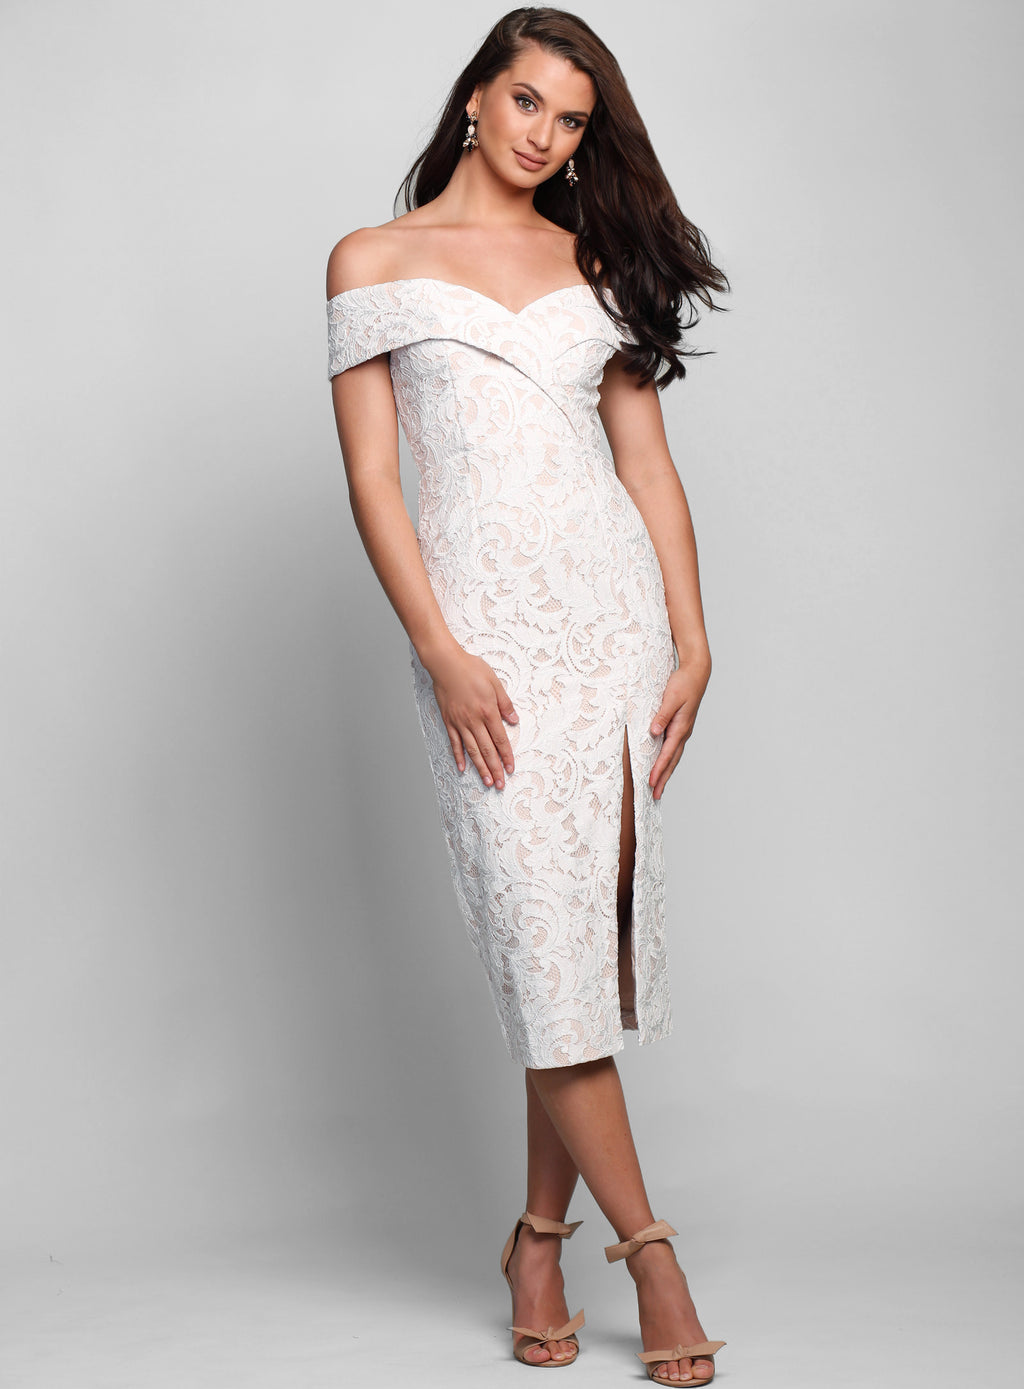 Gia Lace Cocktail Dress